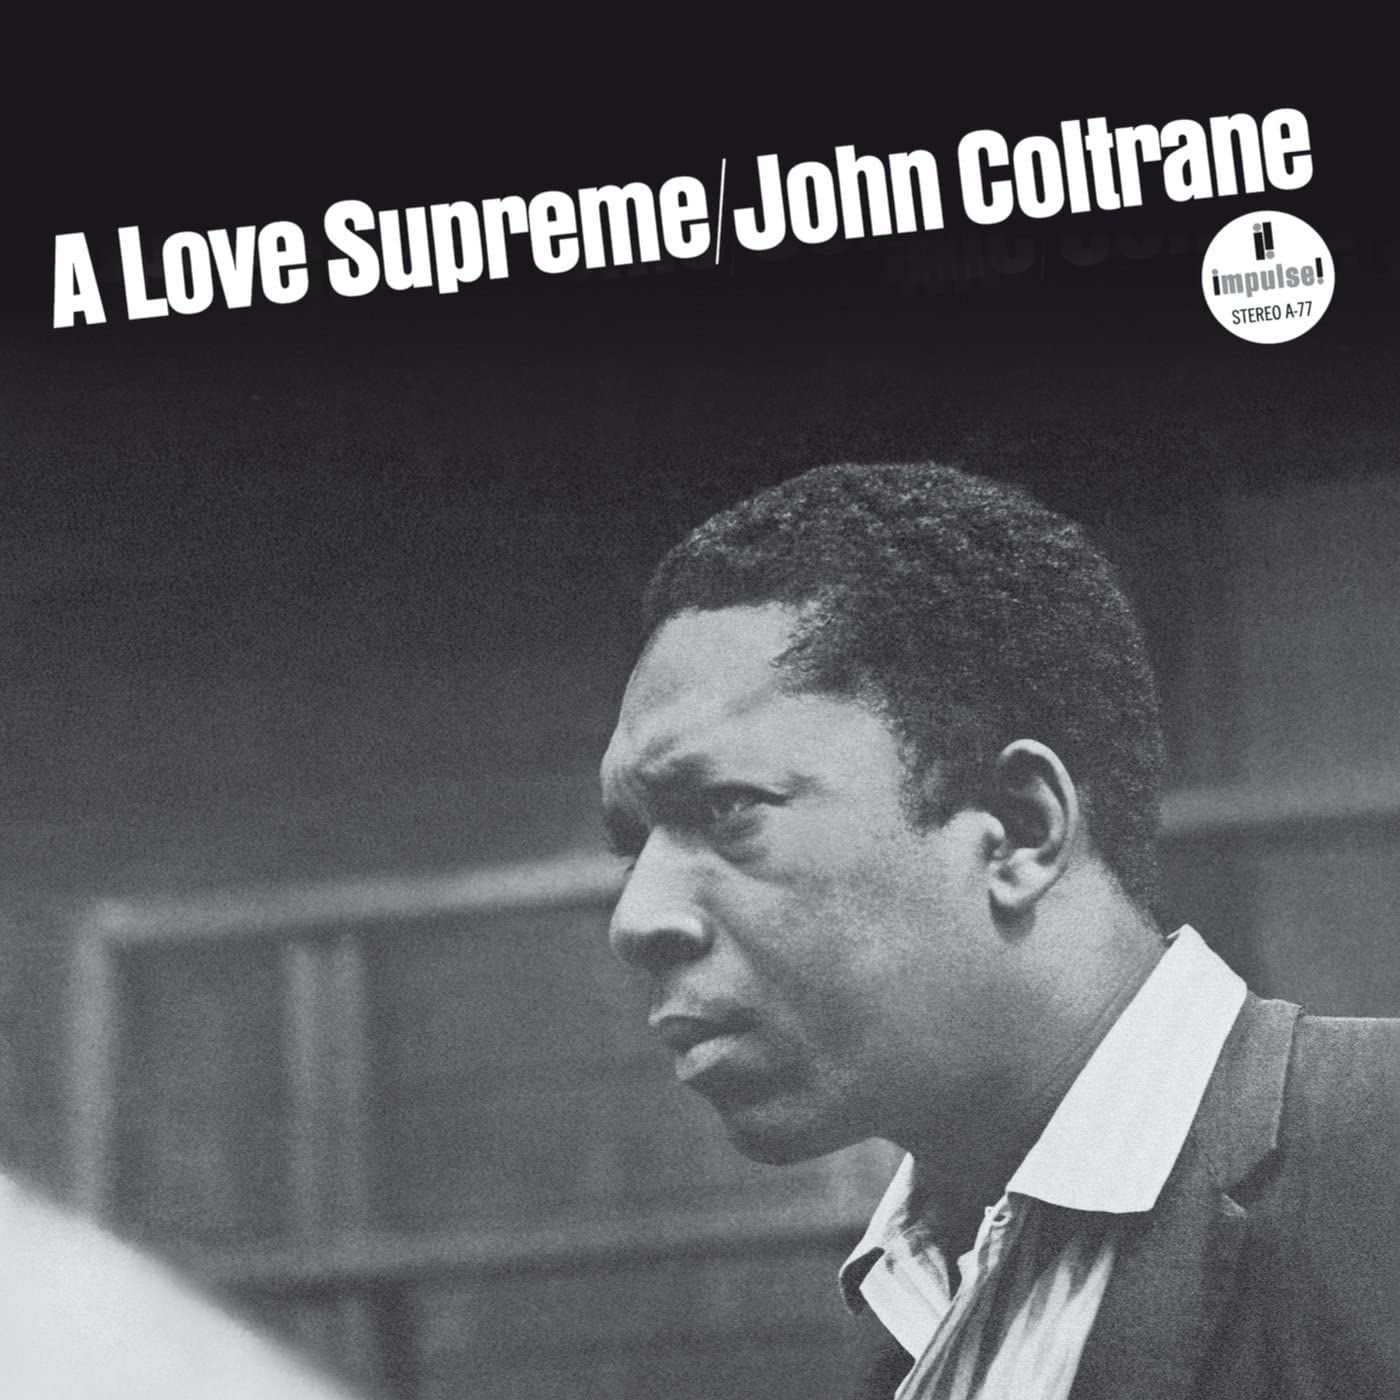 Photo No.1 of John Coltrane: A Love Supreme (Originals)